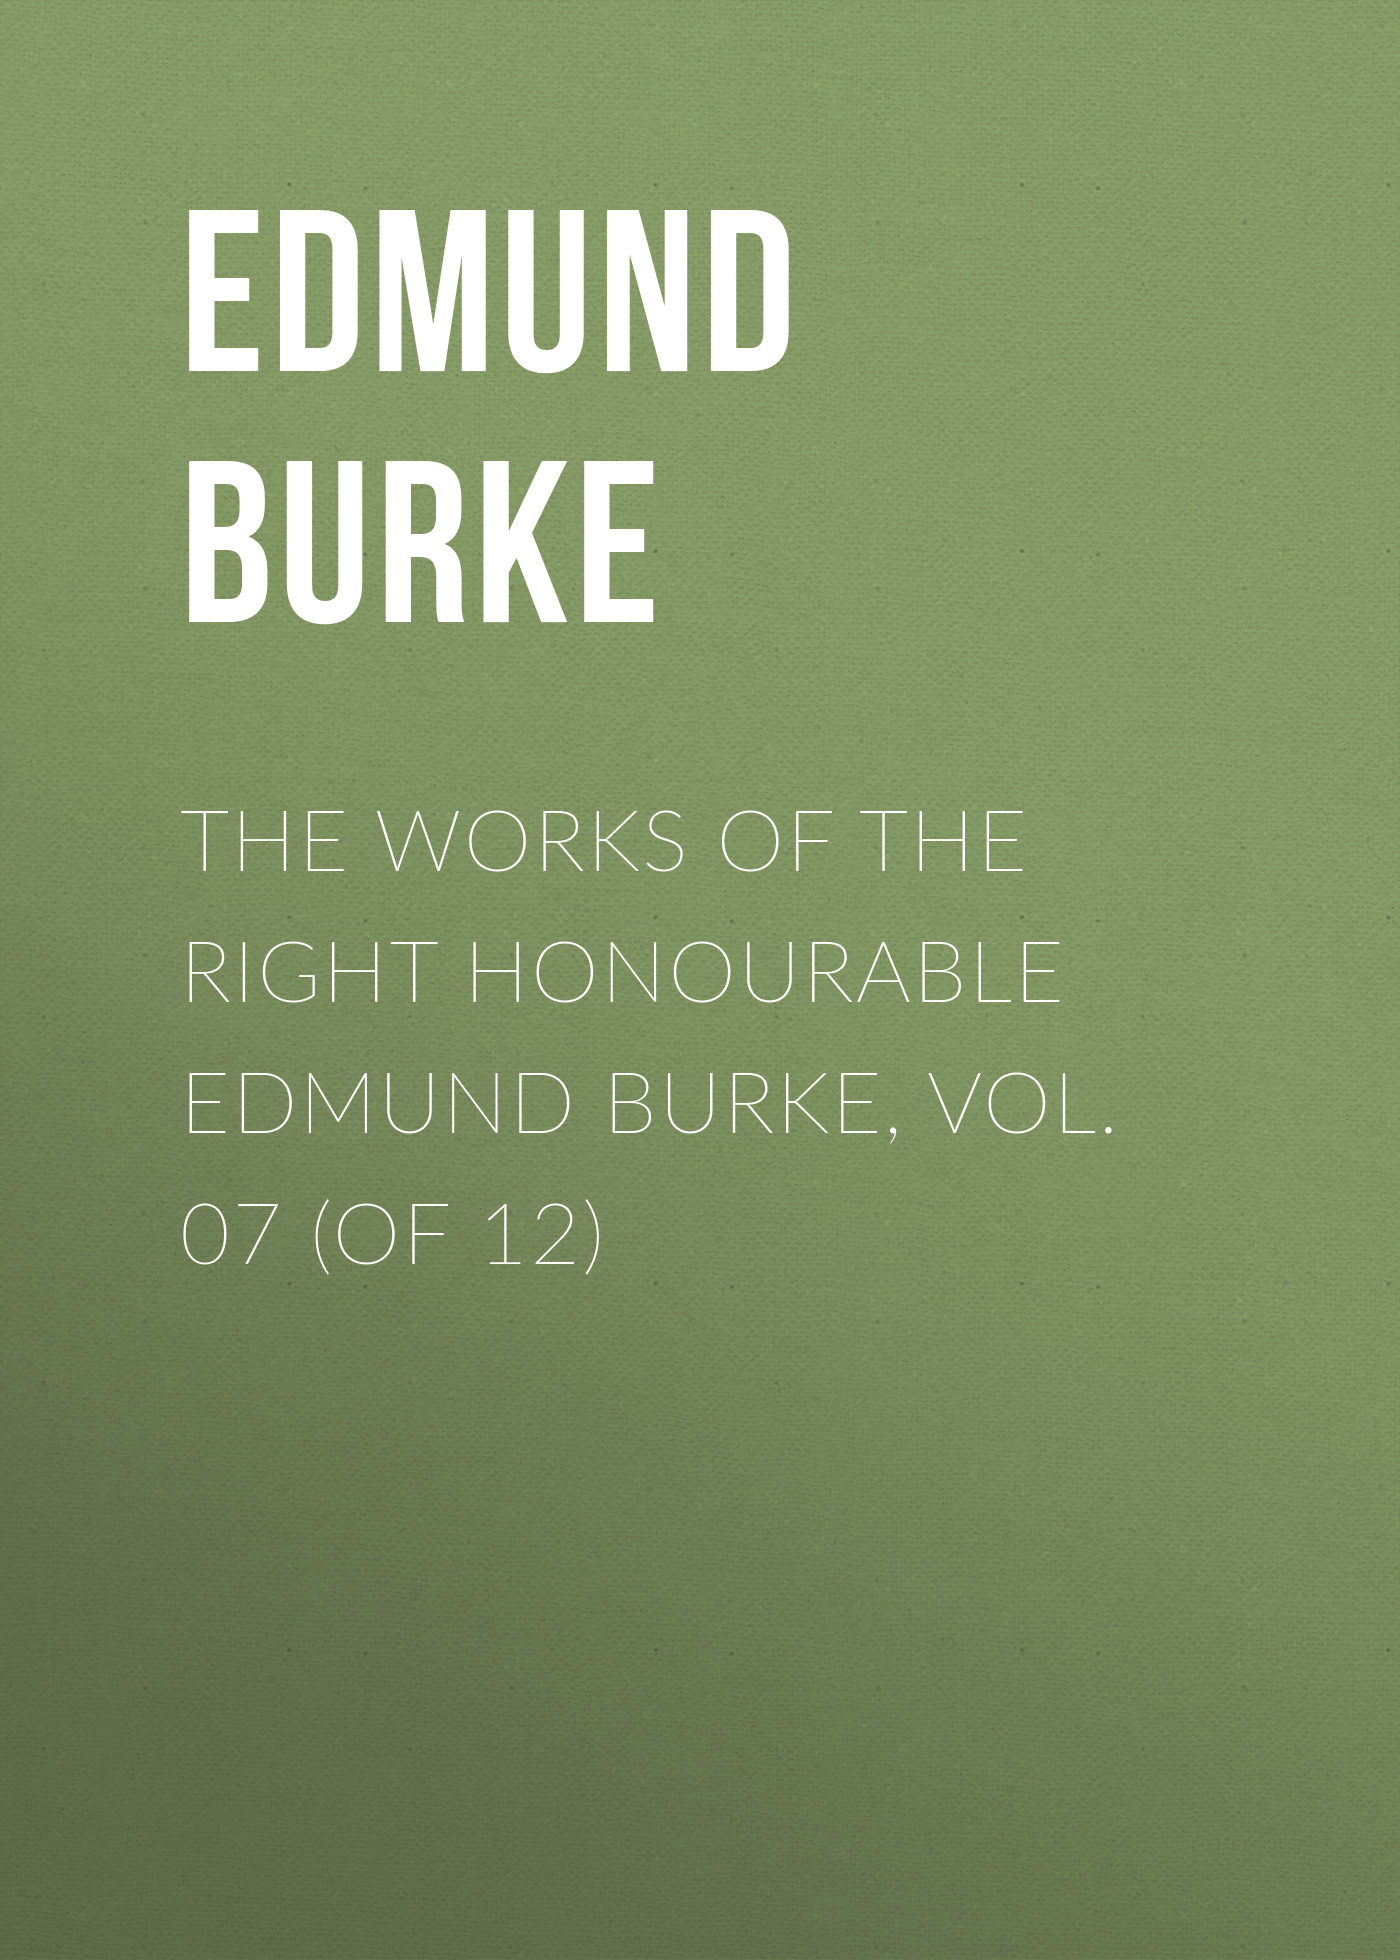 Edmund Burke The Works of the Right Honourable Edmund Burke, Vol. 07 (of 12) edmund burke the works of the right honourable edmund burke vol 12 of 12